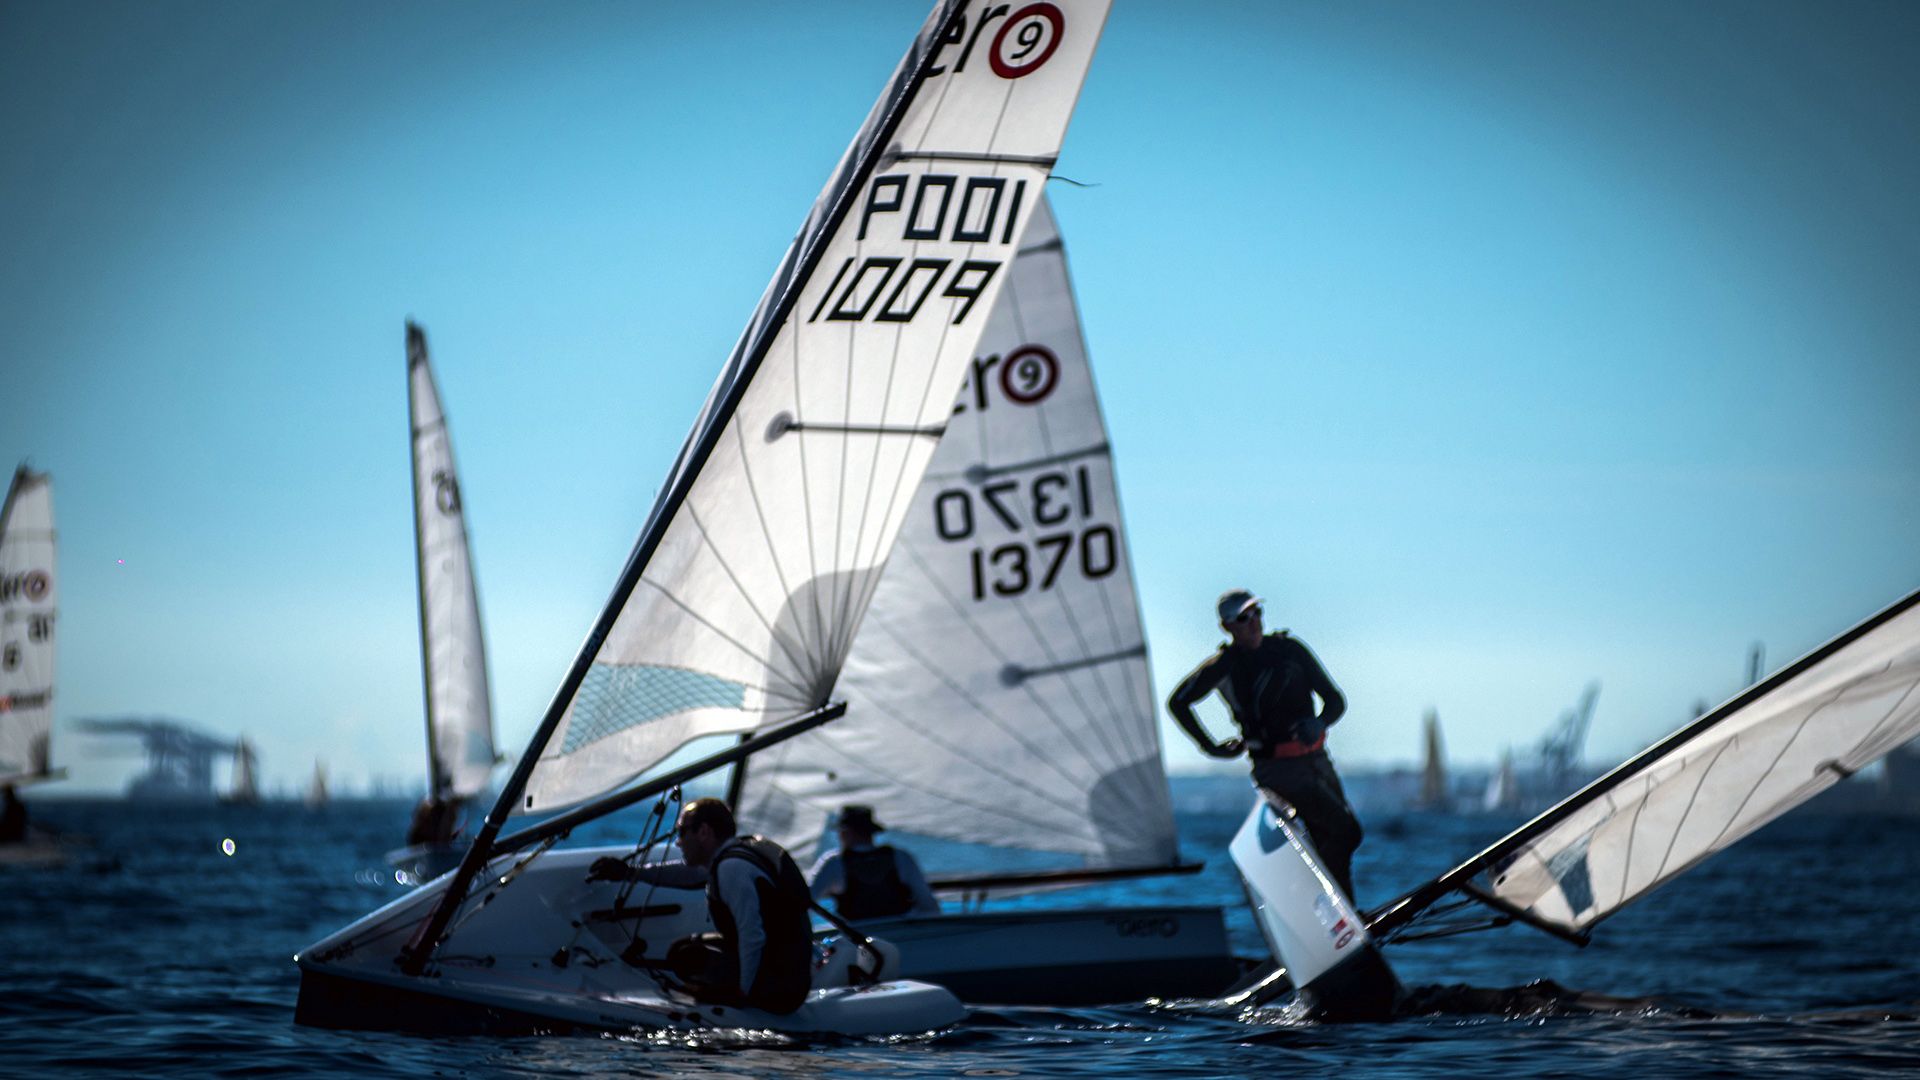 RS Aero – simple single-hander with three rig size options for youth and adult sailors. - RS ...